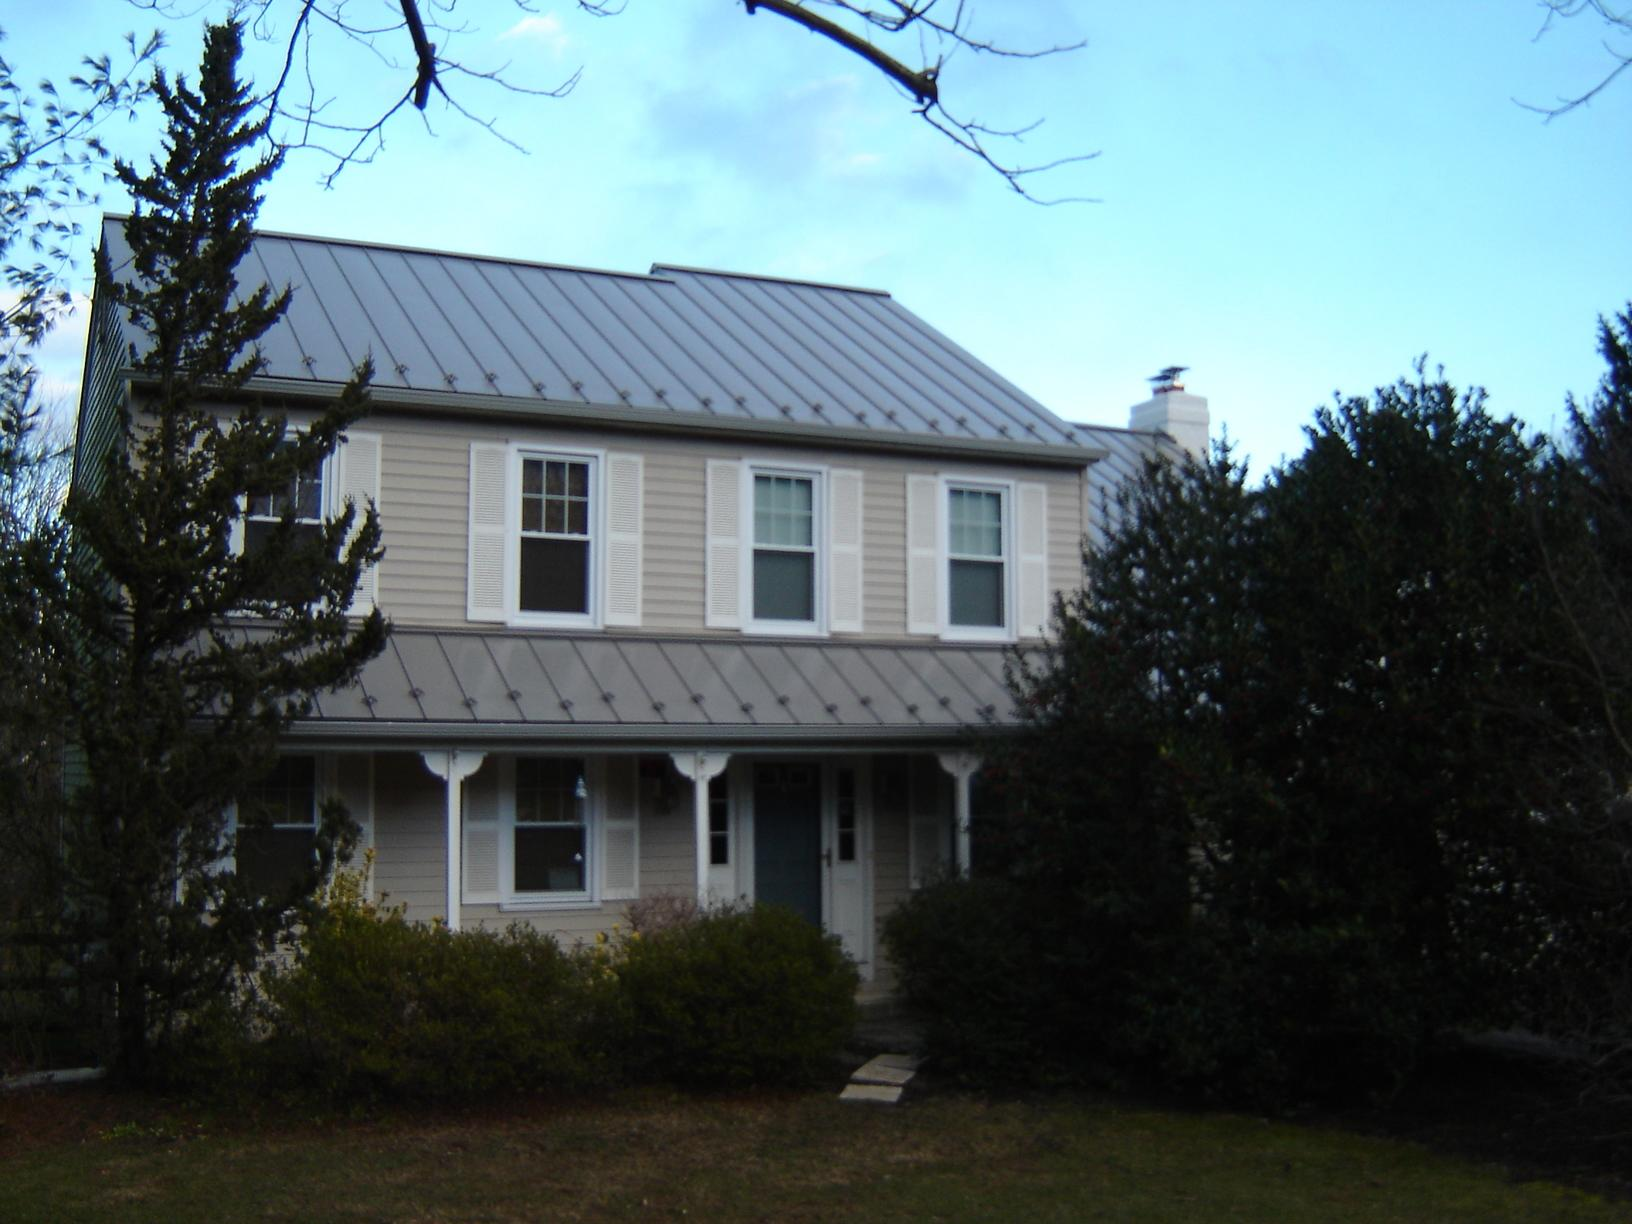 Slate Grey G-Tech Standing Seam Metal Roof Installation in West Chester, PA